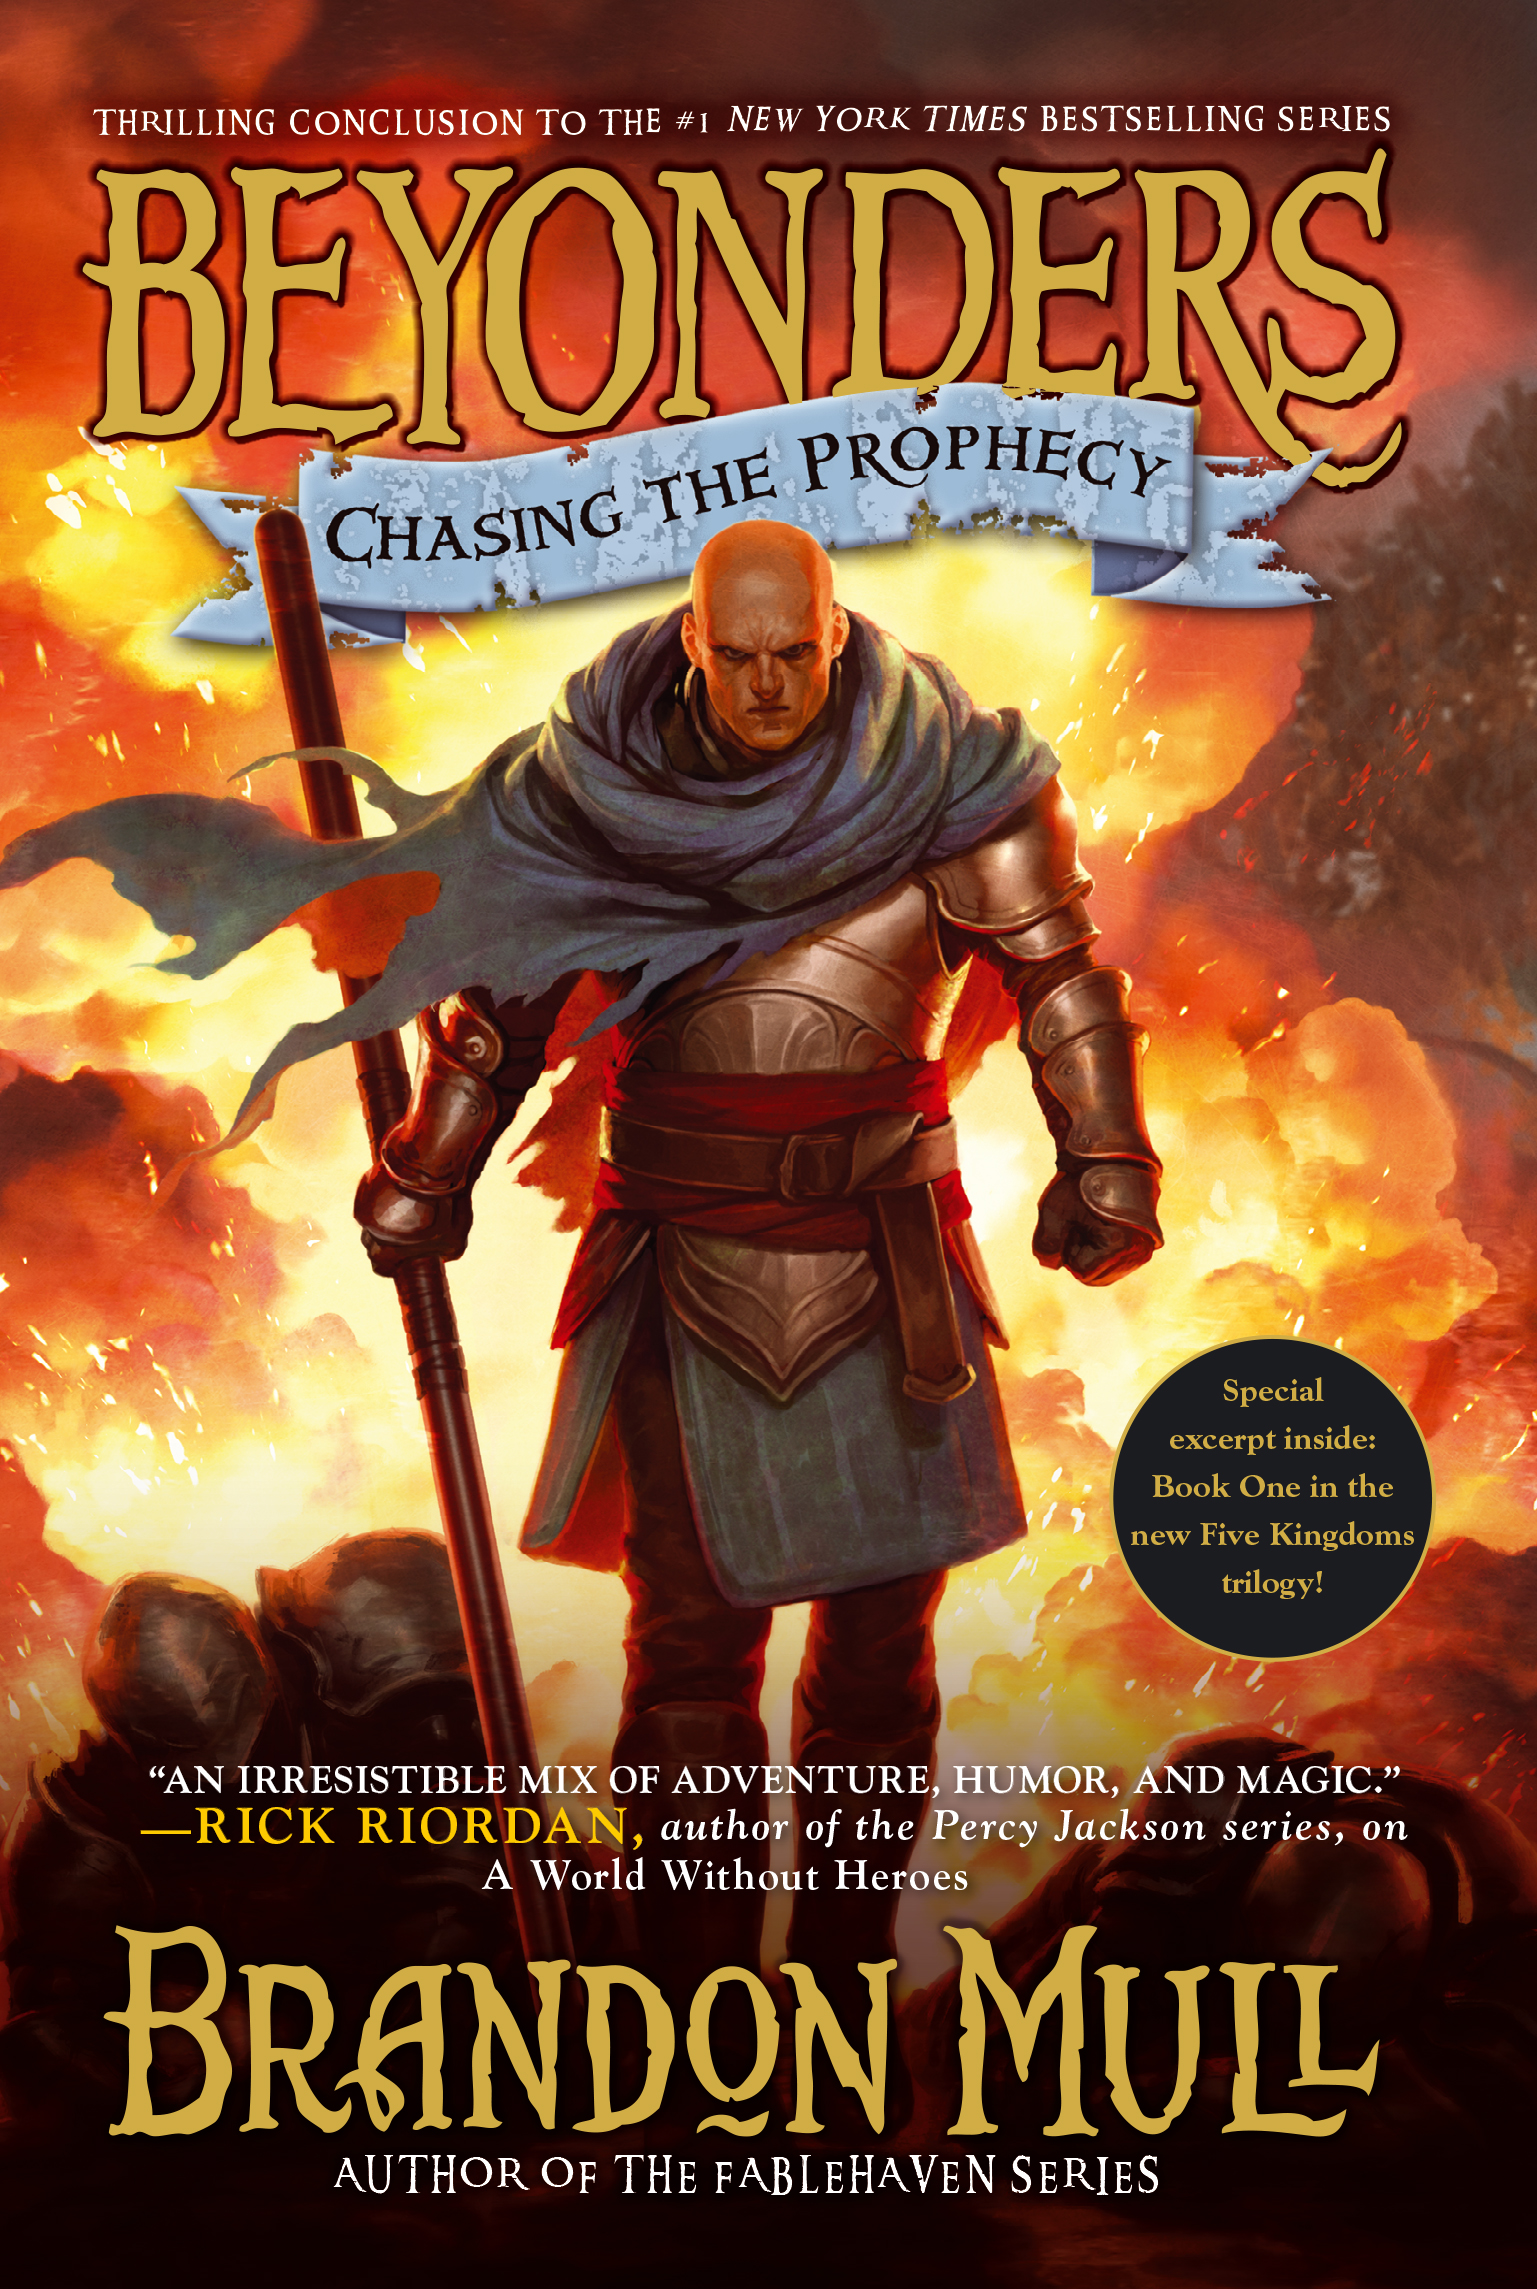 Chasing the prophecy 9781416997979 hr